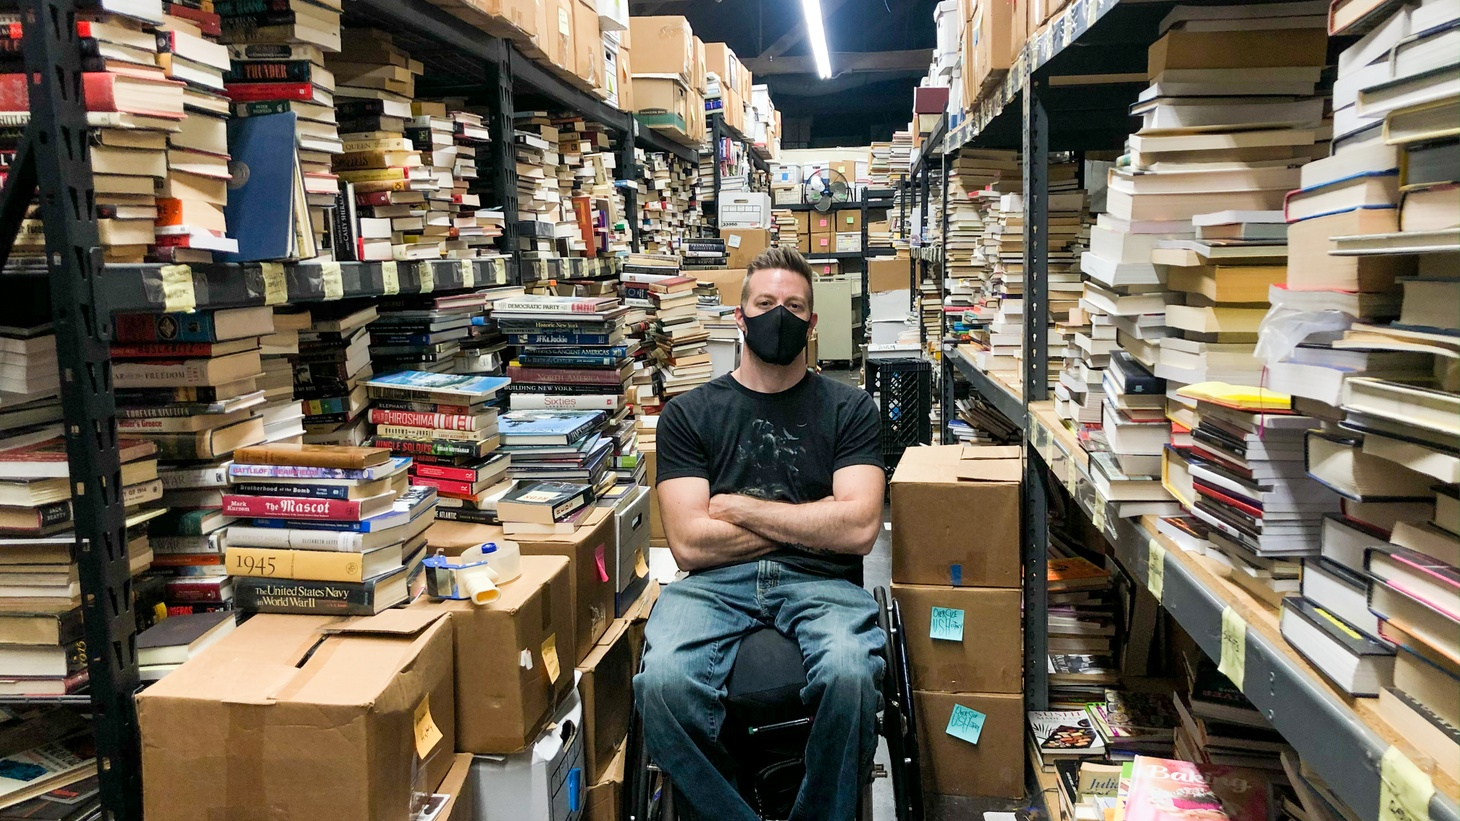 """I just sort boxes of books. It's like Christmas every day. I never know what I'm going to get. Everyday I learn something new and find books I'd never seen before. So it's really the best kind of job for someone with my personality,"" says Josh Spencer, co-owner of The Last Bookstore."